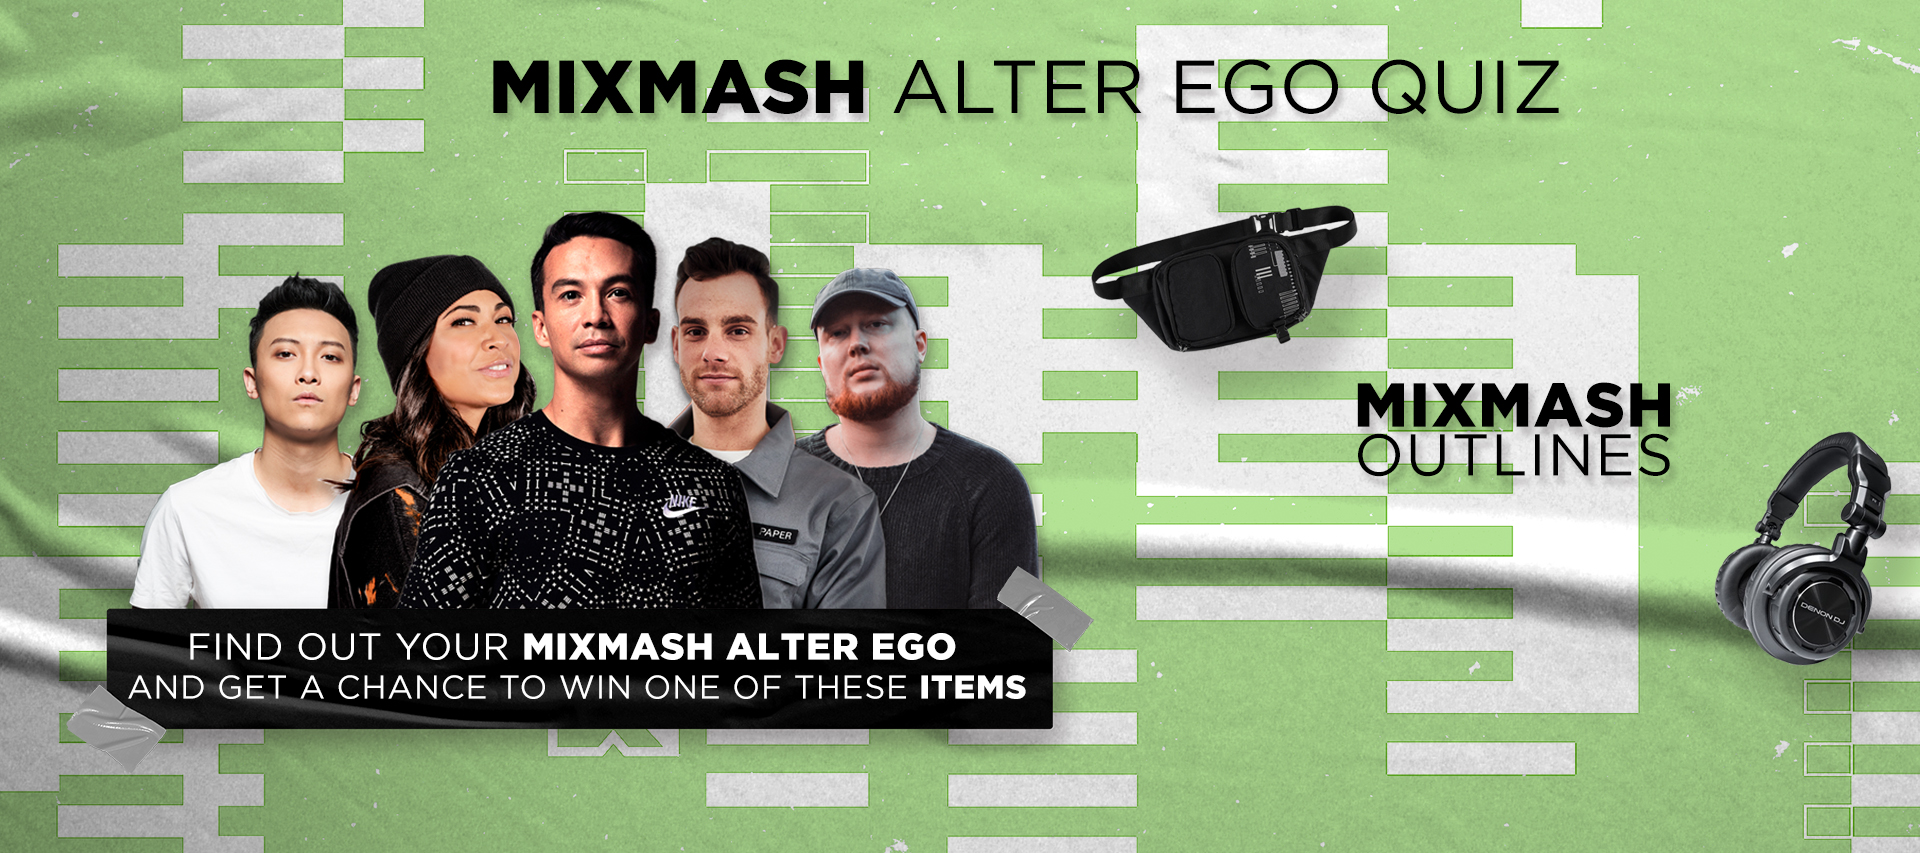 WHO IS YOUR MIXMASH ALTER EGO?